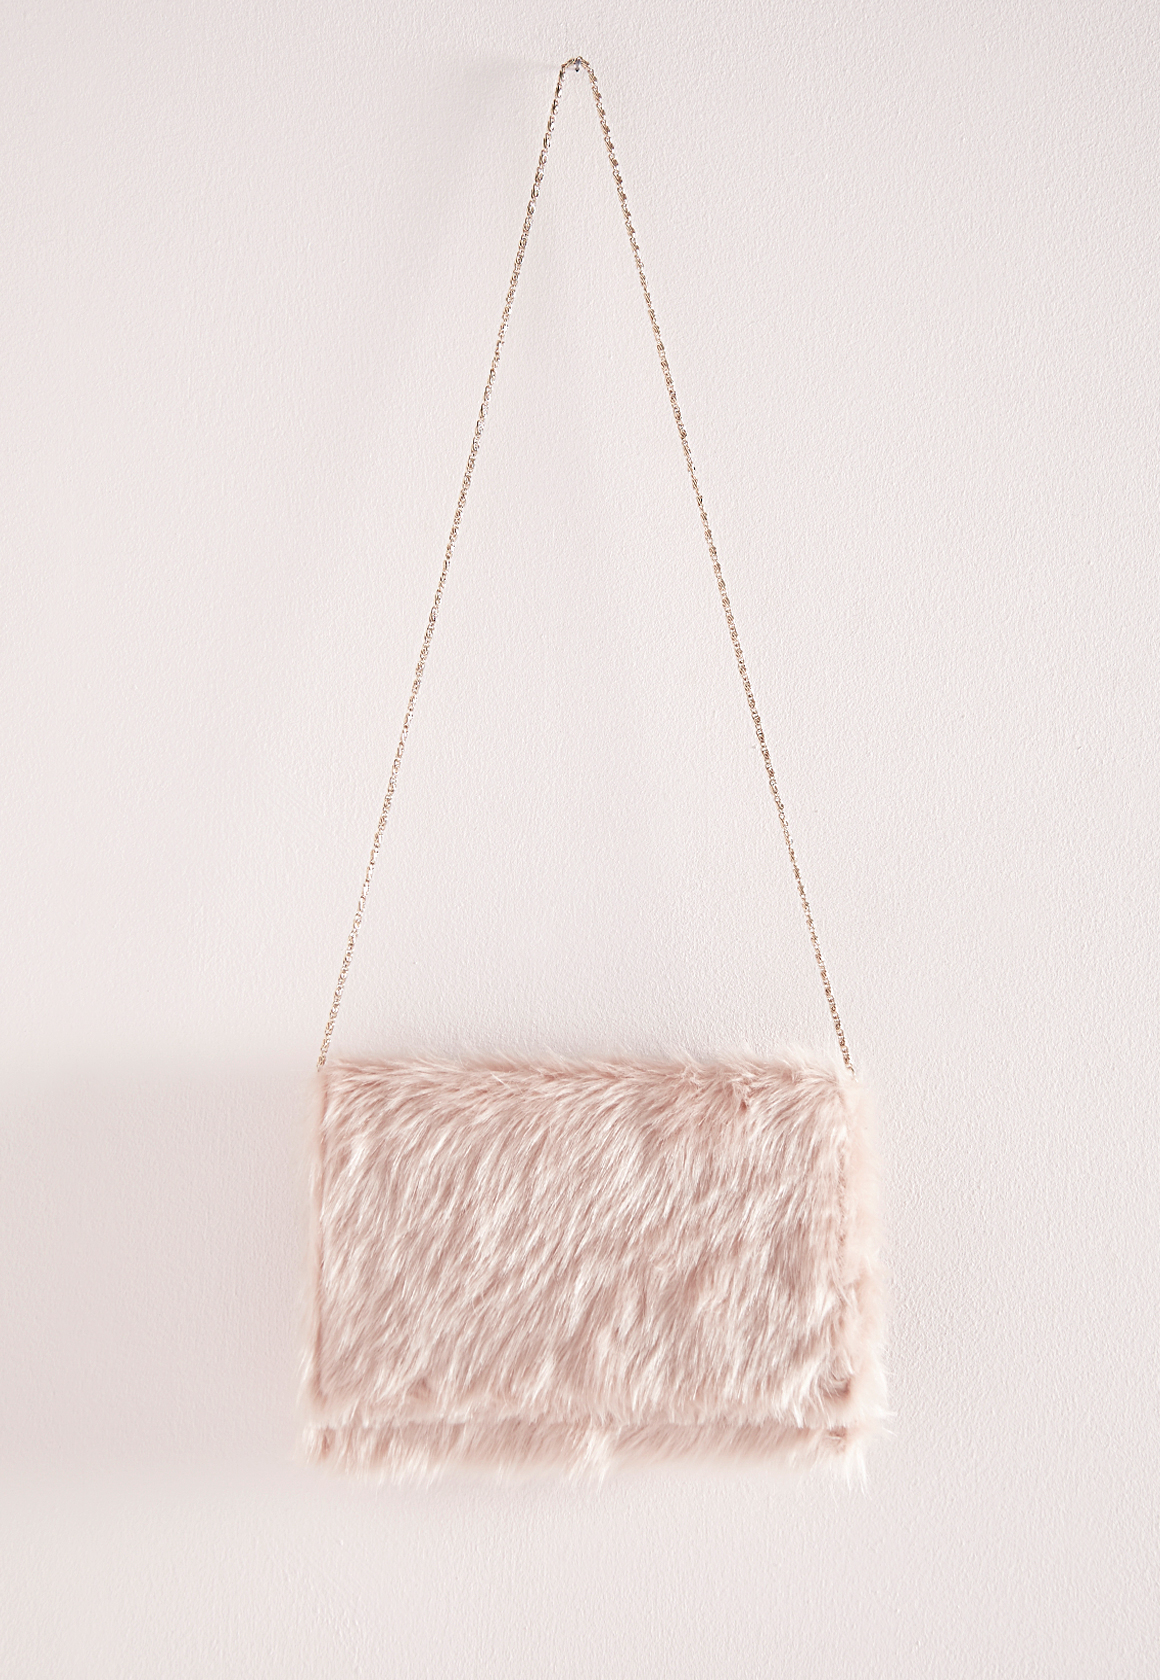 Lyst - Missguided Faux Fur Clutch Pink in Pink 3a1a33ea38bff